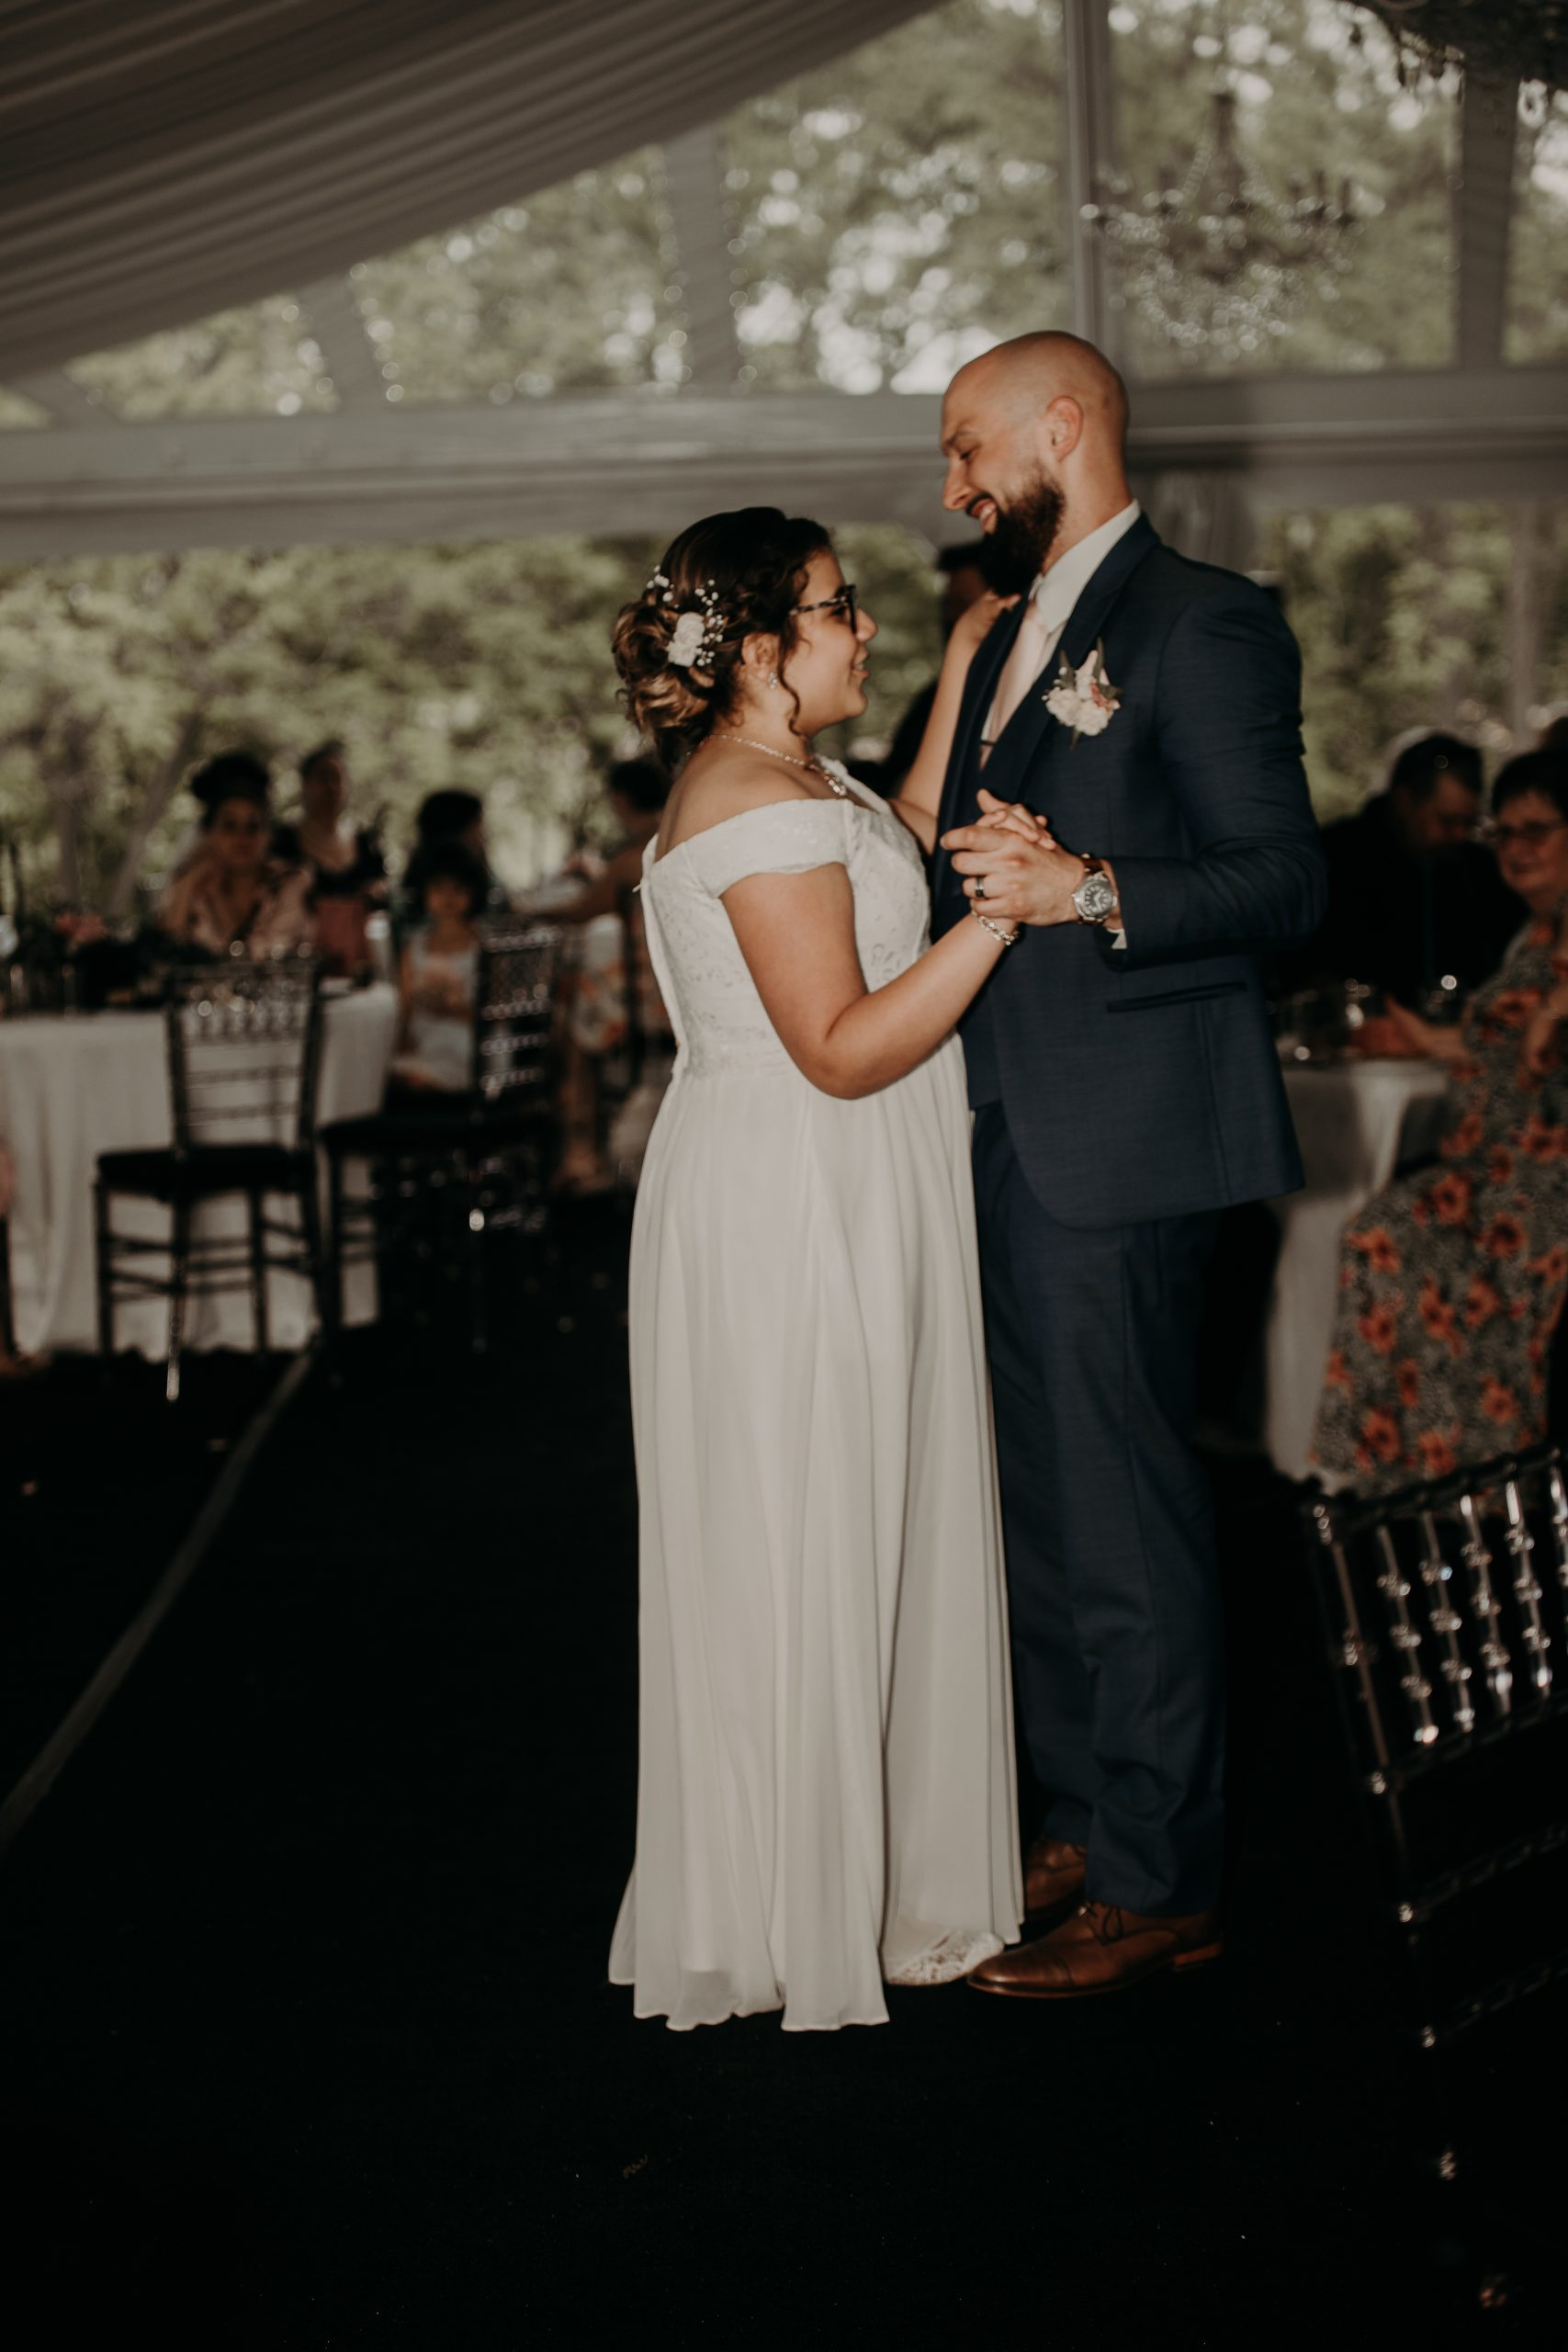 New daddy and daughter dance to top off the bride and her father dancing prior. Christine and Richard wed on the Chestnut Hill Villa grounds on May of 2019. This organic ethereal styled wedding was captured by Garnet Dahlia Photography and featured on Dream Weddings.